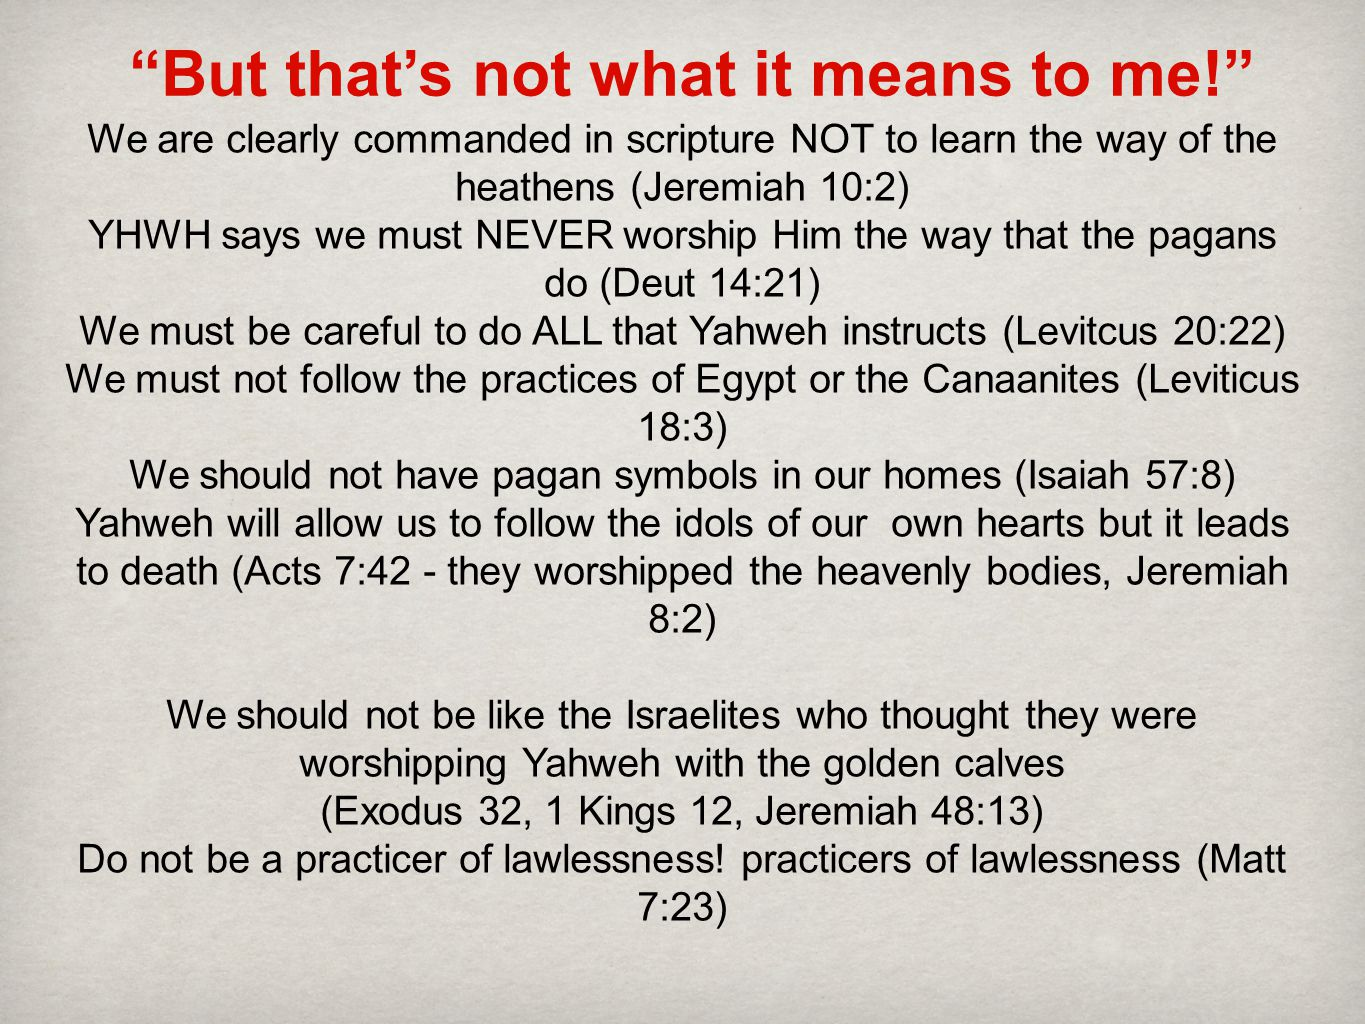 But that's not what it means to me! We are clearly commanded in scripture NOT to learn the way of the heathens (Jeremiah 10:2) YHWH says we must NEVER worship Him the way that the pagans do (Deut 14:21) We must be careful to do ALL that Yahweh instructs (Levitcus 20:22) We must not follow the practices of Egypt or the Canaanites (Leviticus 18:3) We should not have pagan symbols in our homes (Isaiah 57:8) Yahweh will allow us to follow the idols of our own hearts but it leads to death (Acts 7:42 - they worshipped the heavenly bodies, Jeremiah 8:2) We should not be like the Israelites who thought they were worshipping Yahweh with the golden calves (Exodus 32, 1 Kings 12, Jeremiah 48:13) Do not be a practicer of lawlessness.